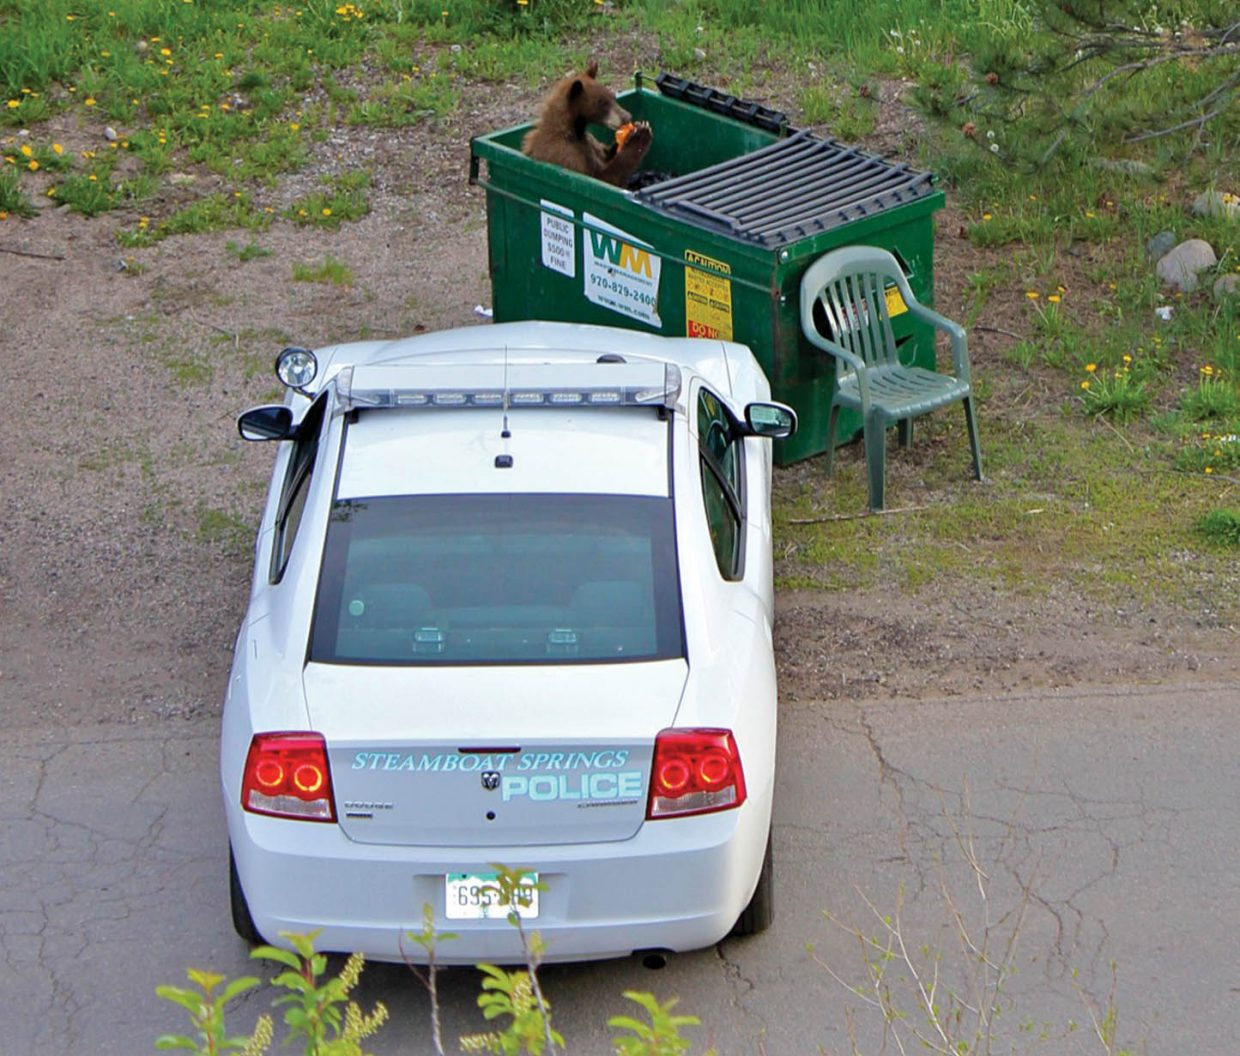 A bear snacks on garbage in a dumpster near 11th and Oak streets in downtown Steamboat Springs in 2012. Police said they plan to be more aggressive in enforcing rules meant to keep bears out of trash cans and dumpsters.